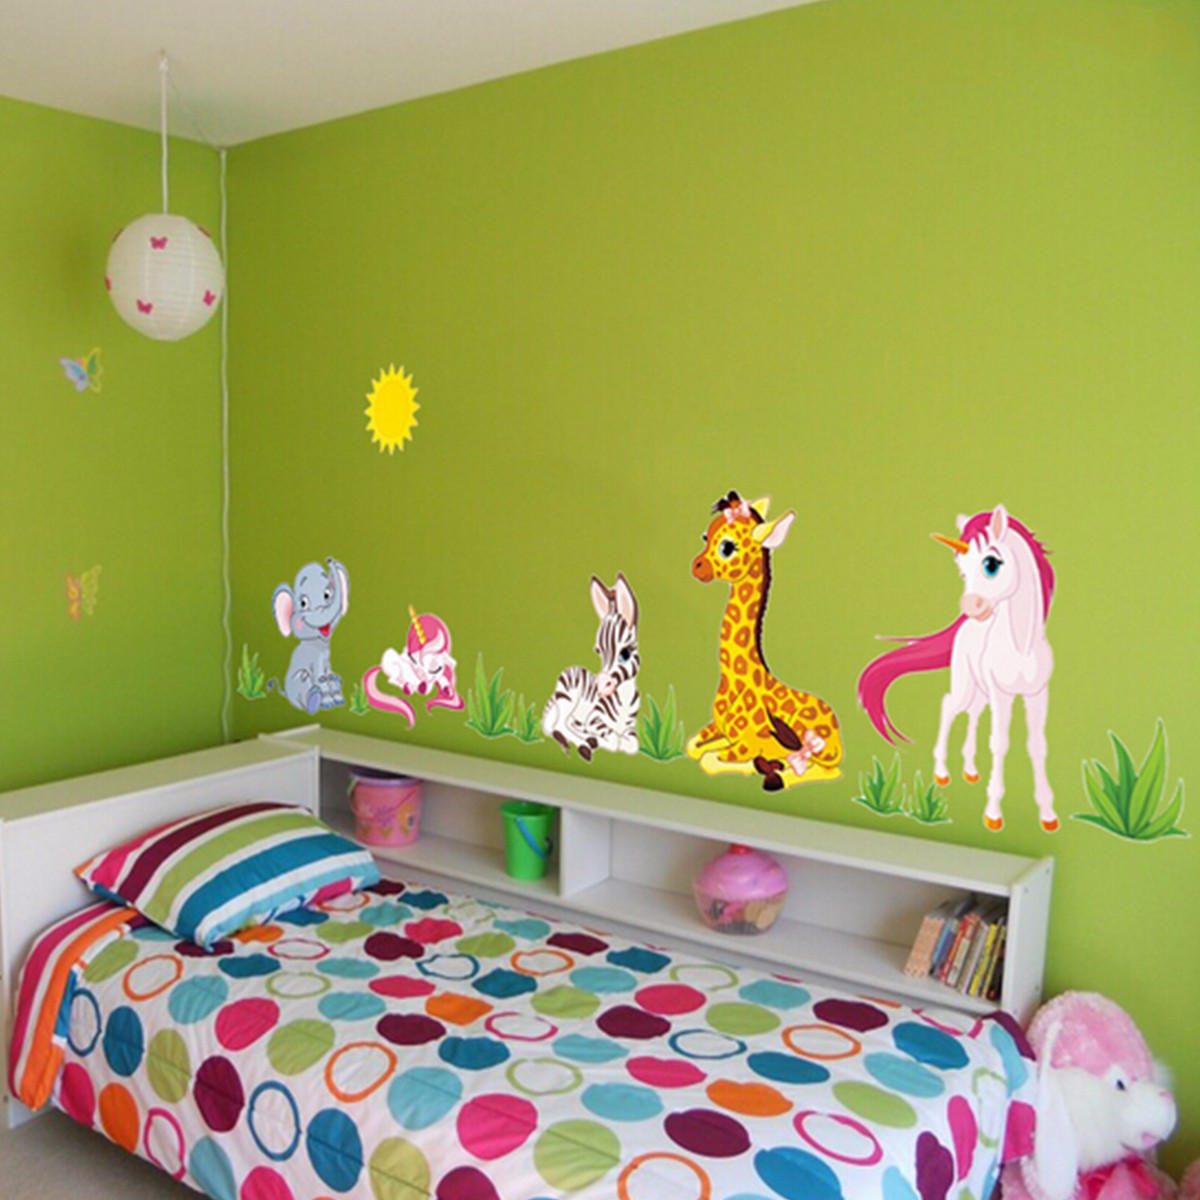 Cartoon animal elephant giraffes grass bedroom removable for Baby room decoration games free online